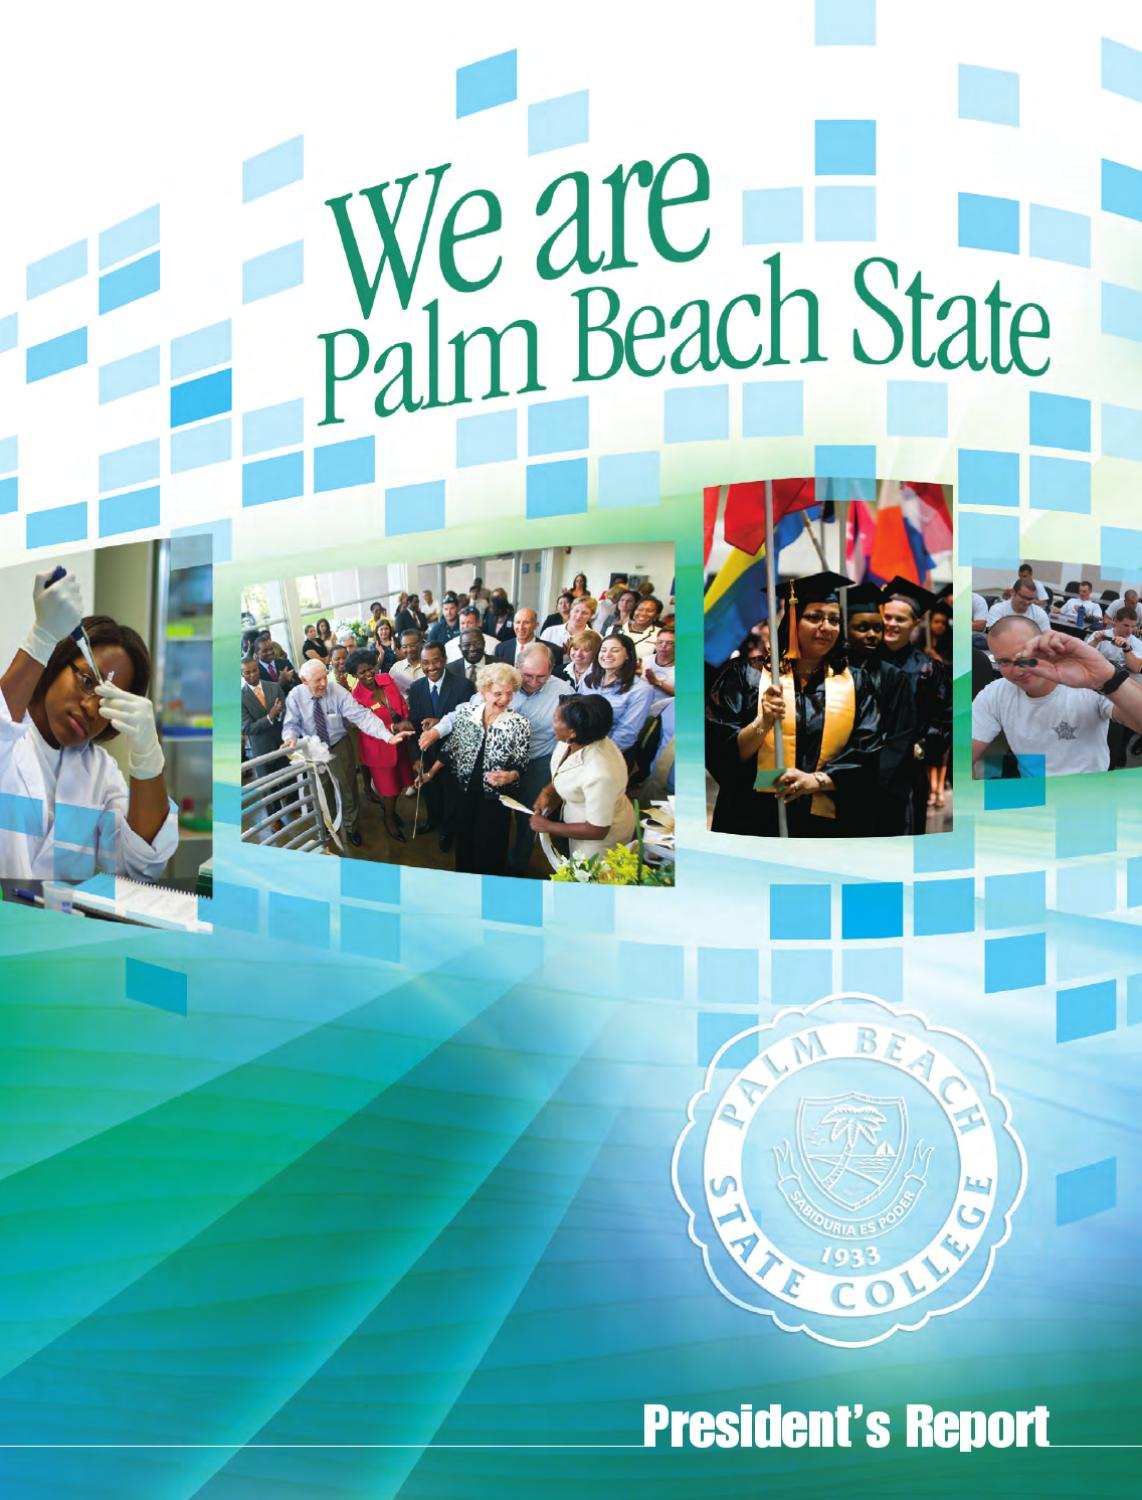 President's Report By Palm Beach State College